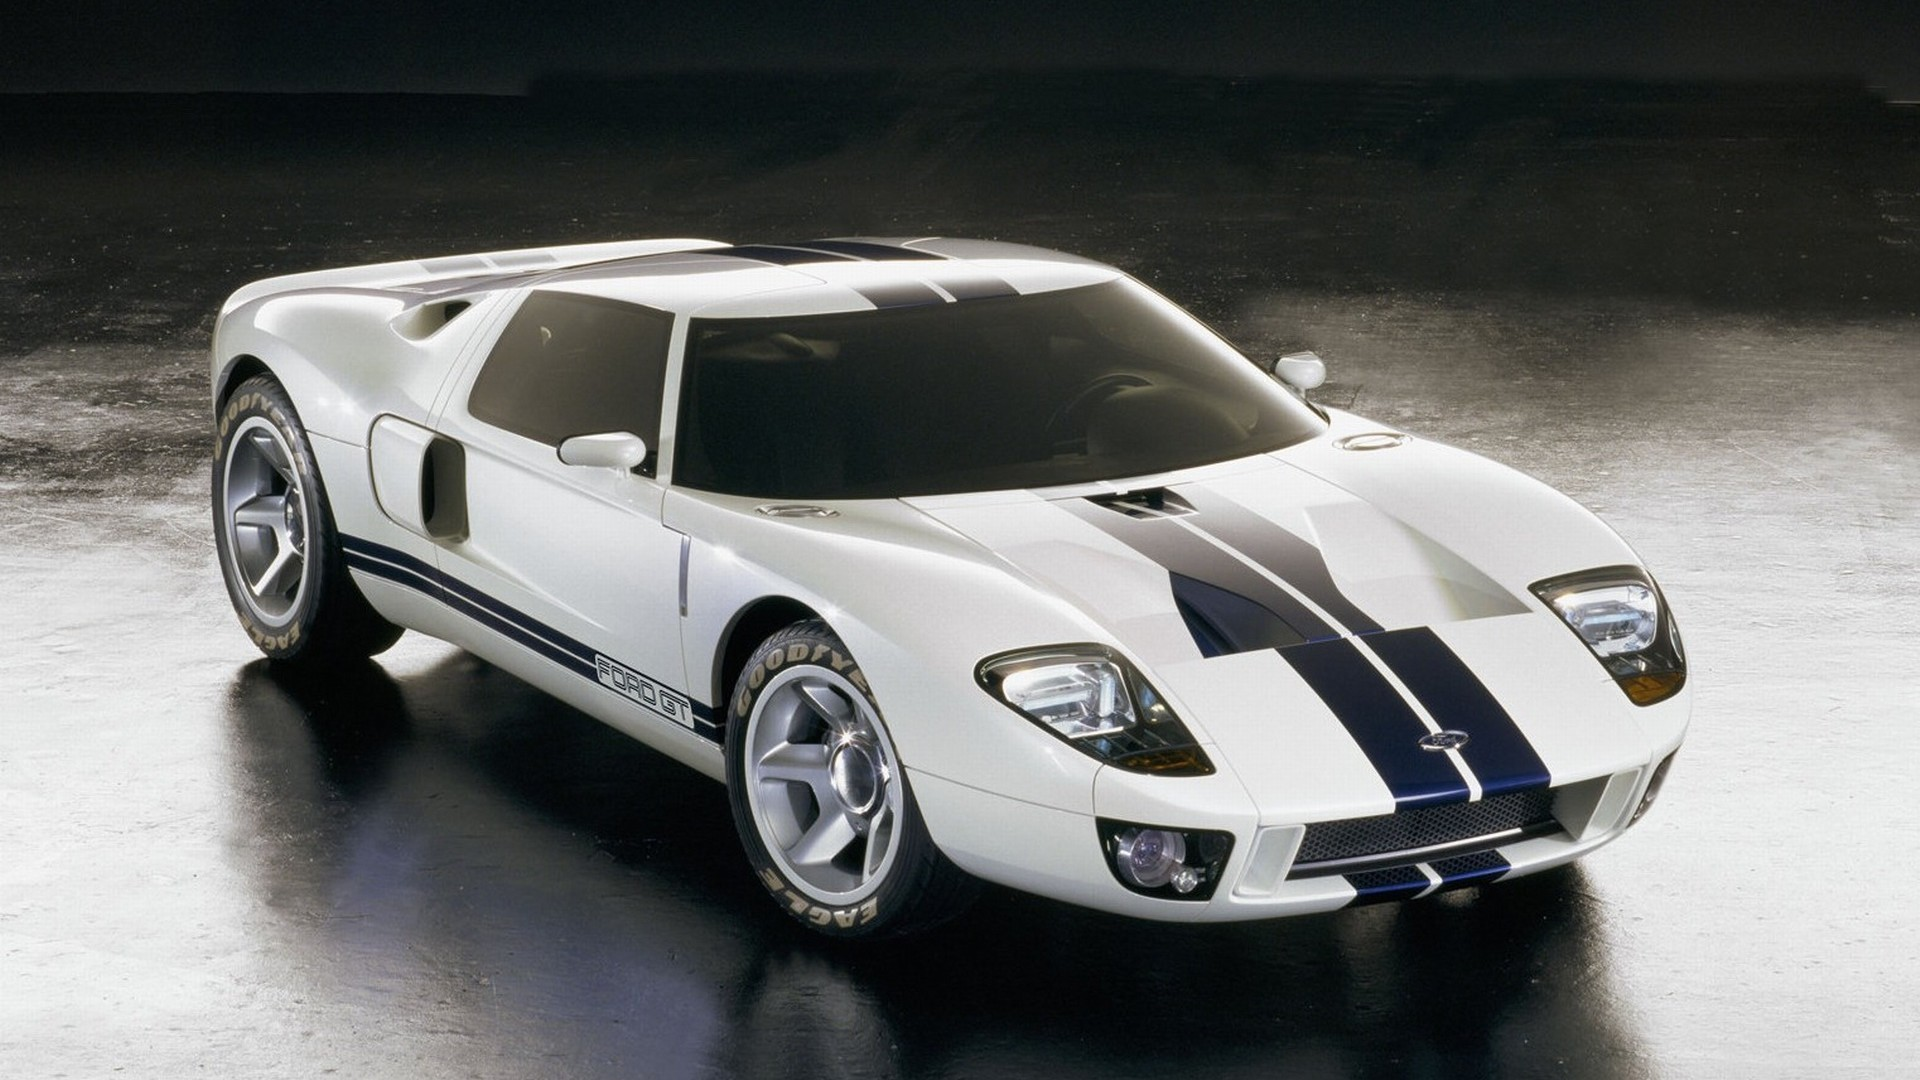 Ford GT40 Concept 2002 10 1920x1080 WallpapersFord GT 1920x1080 1920x1080